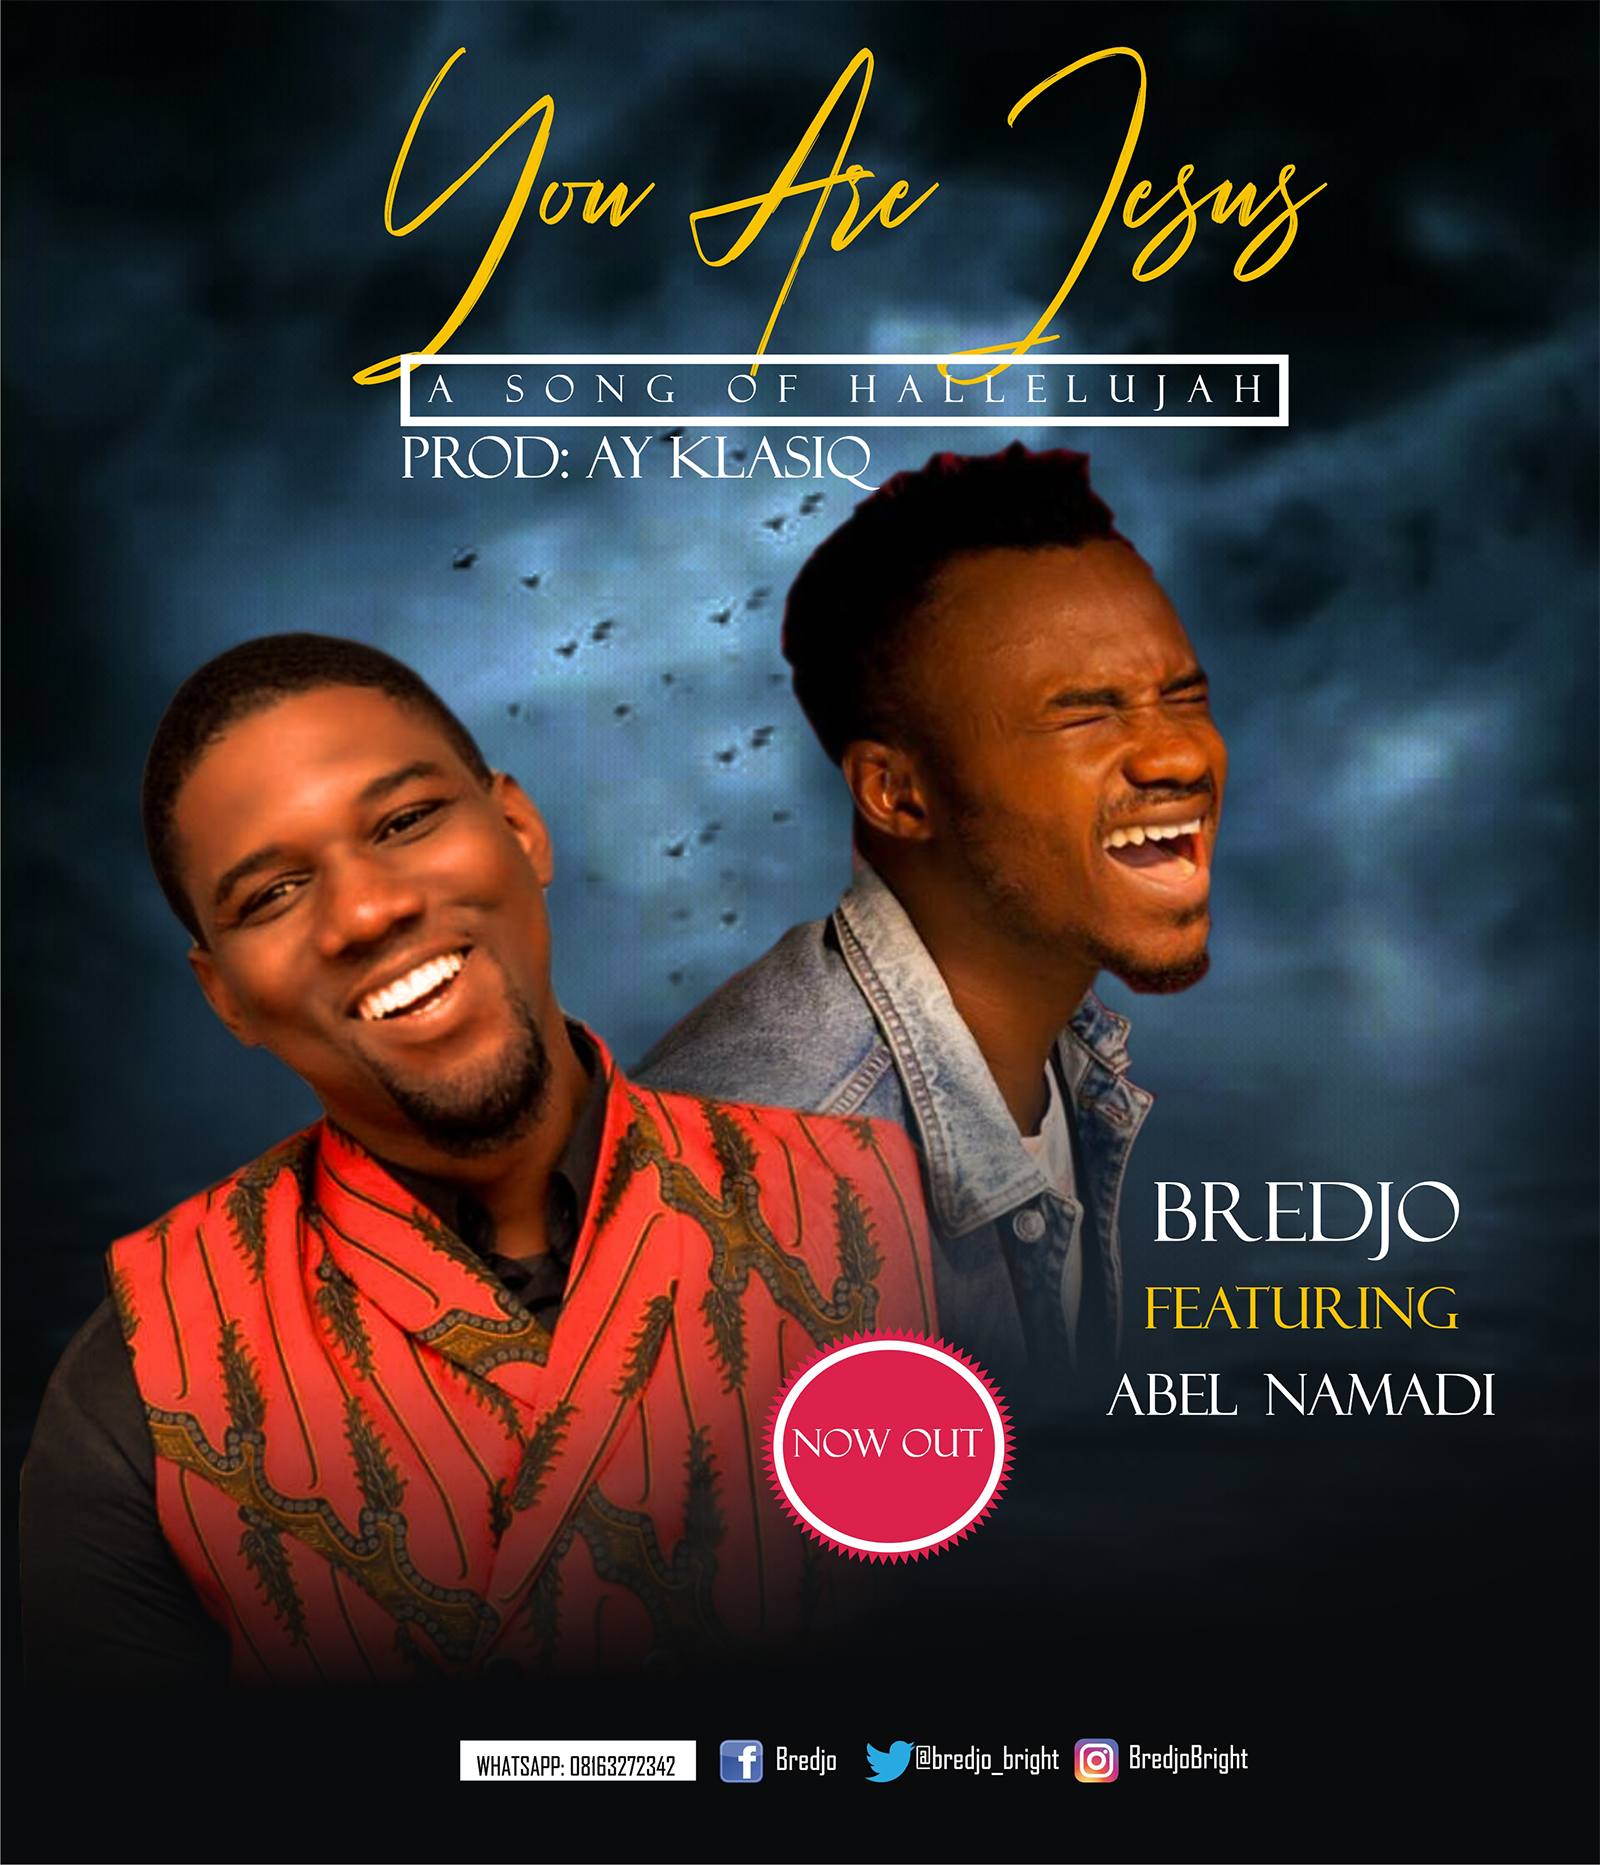 BREDJO - ''YOU ARE JESUS'' || FEAT. ABEL NAMADI || @Bredjo_bright